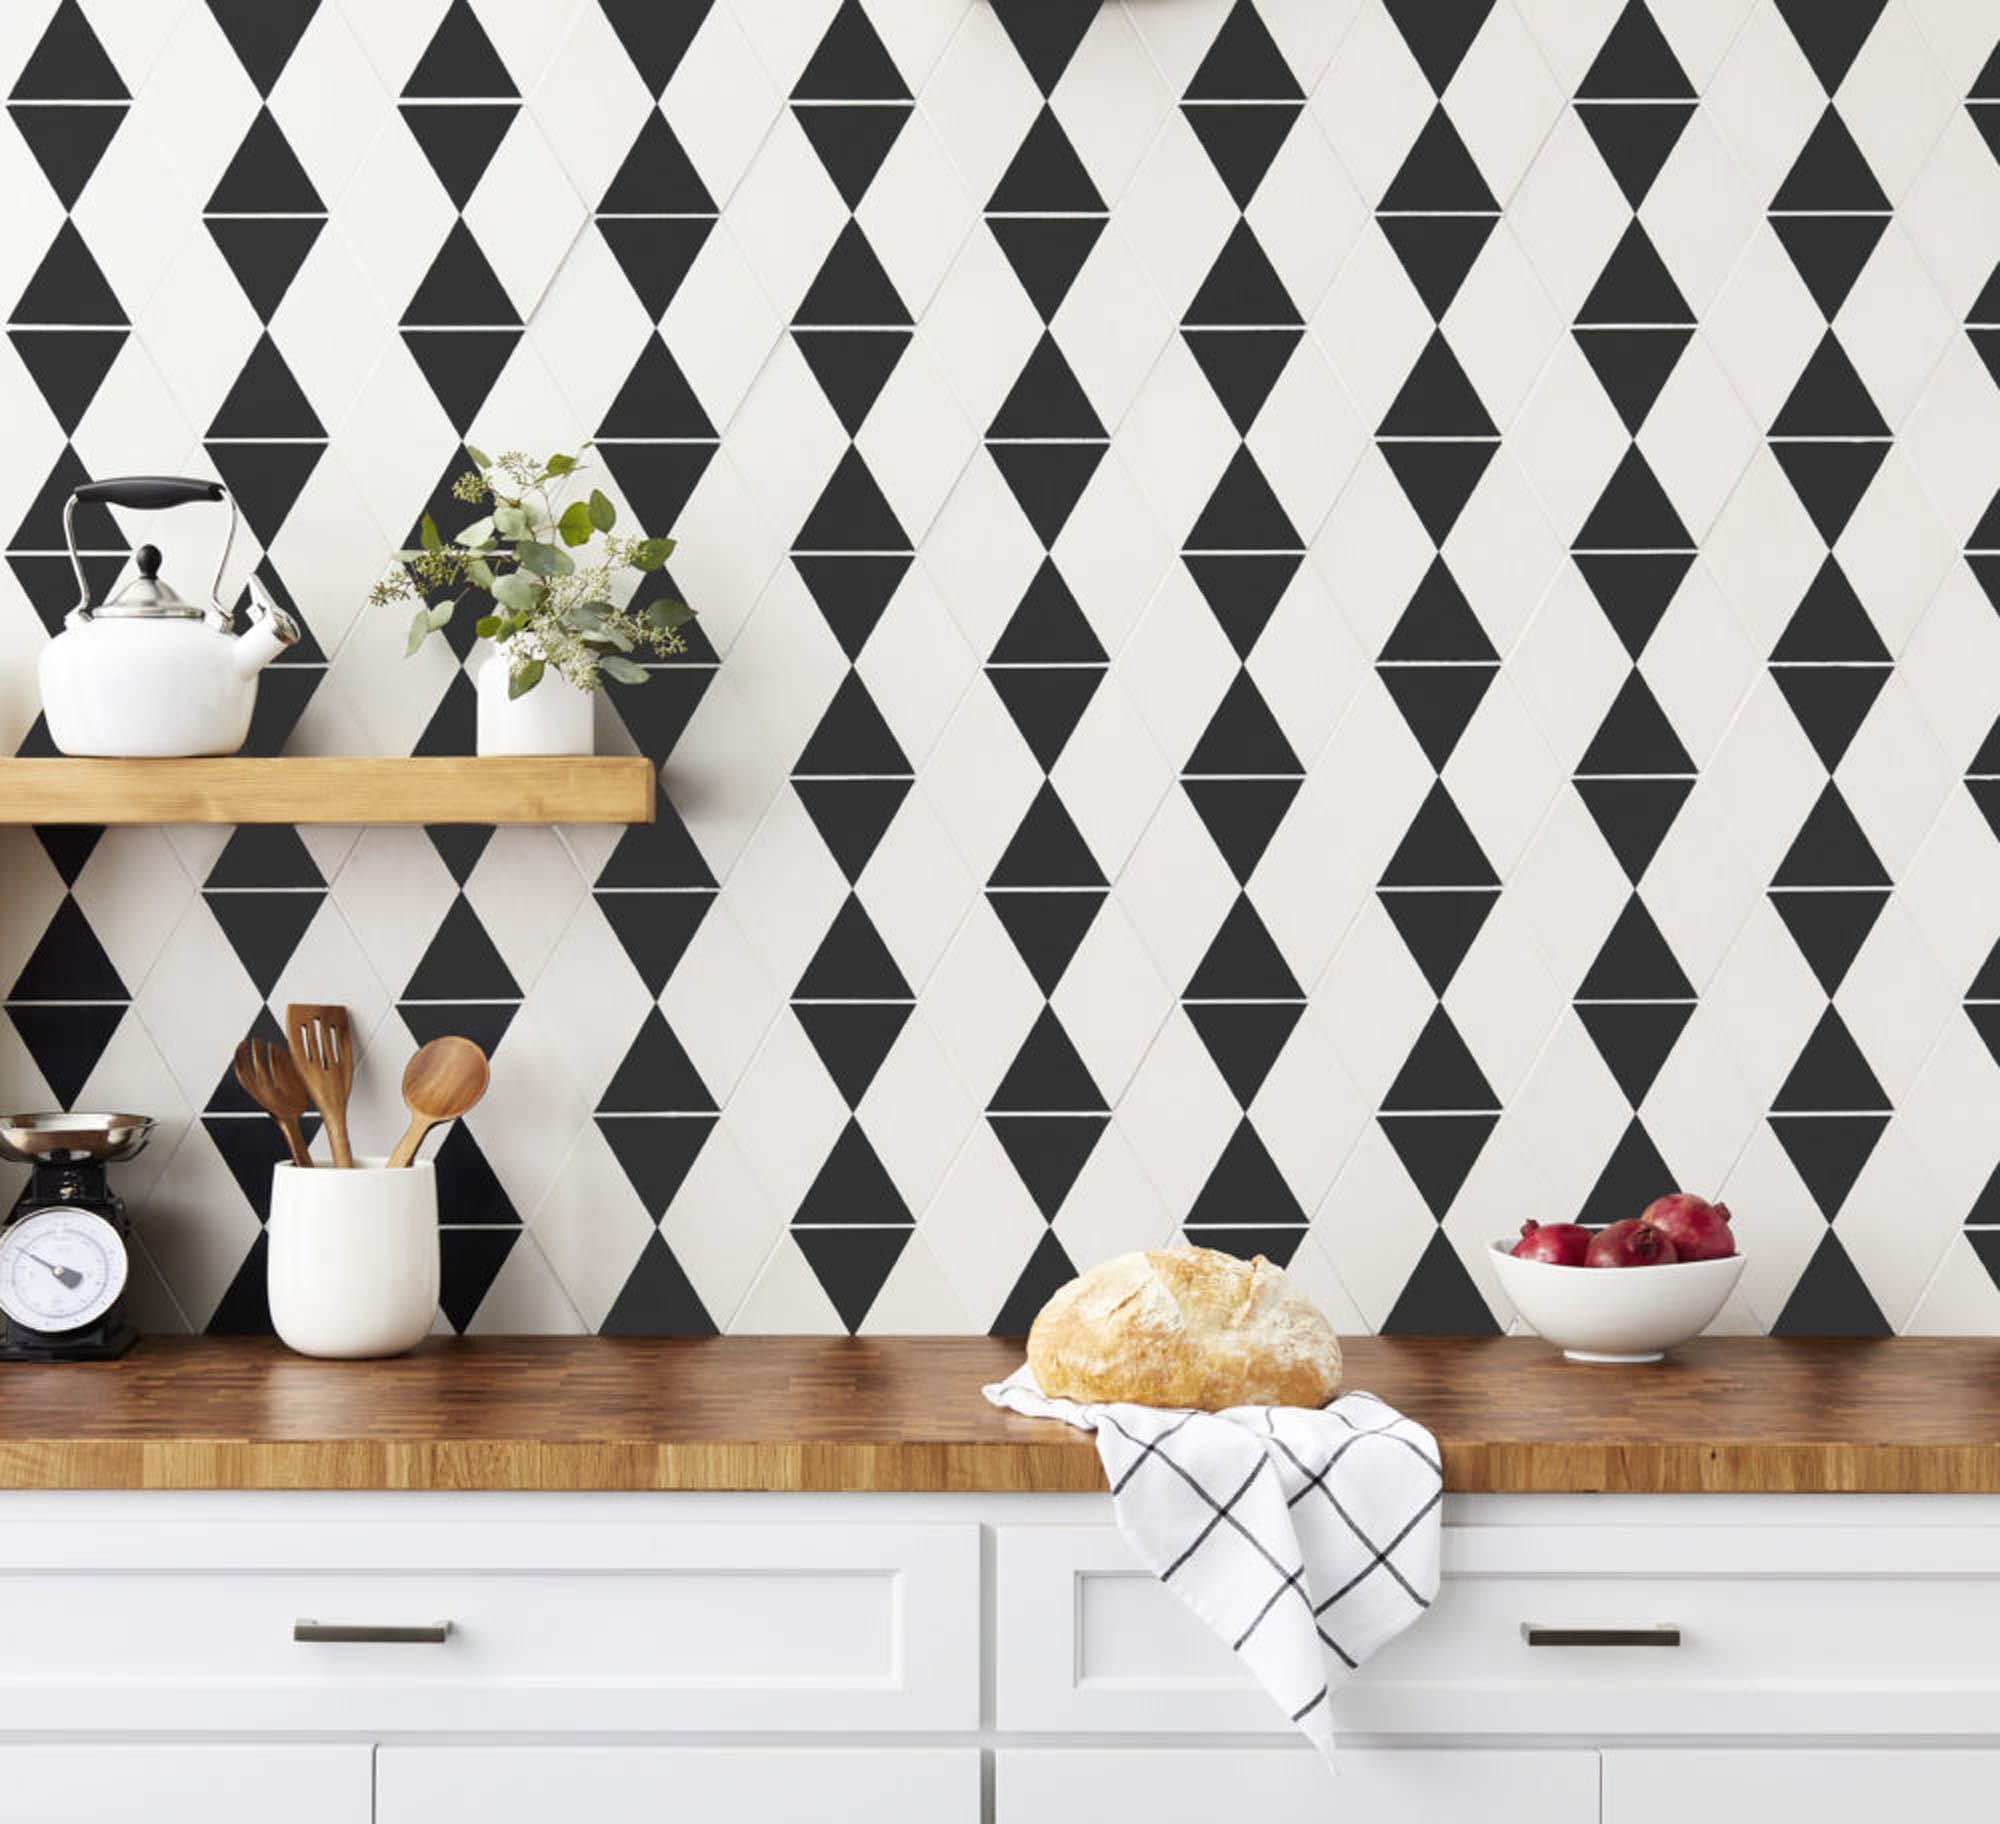 Black and white geometric encaustic backsplash